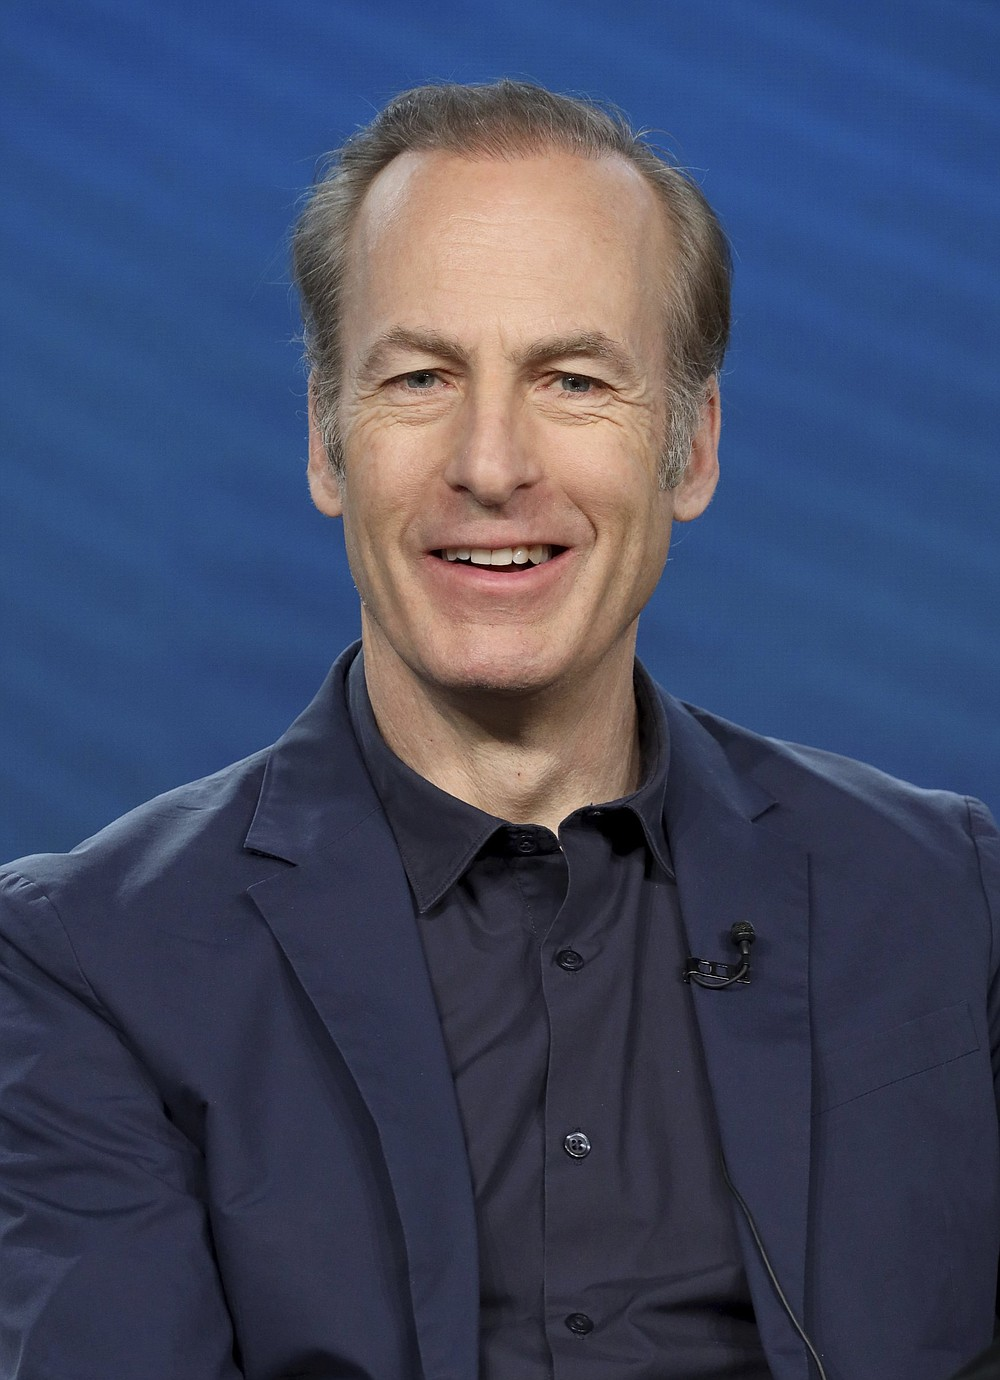 """Bob Odenkirk speaks at the AMC's """"Better Call Saul"""" panel during the AMC Networks TCA 2020 Winter Press Tour at the Langham Huntington on Thursday, Jan. 16, 2020, in Pasadena, Calif. (Photo by Willy Sanjuan/Invision/AP)"""